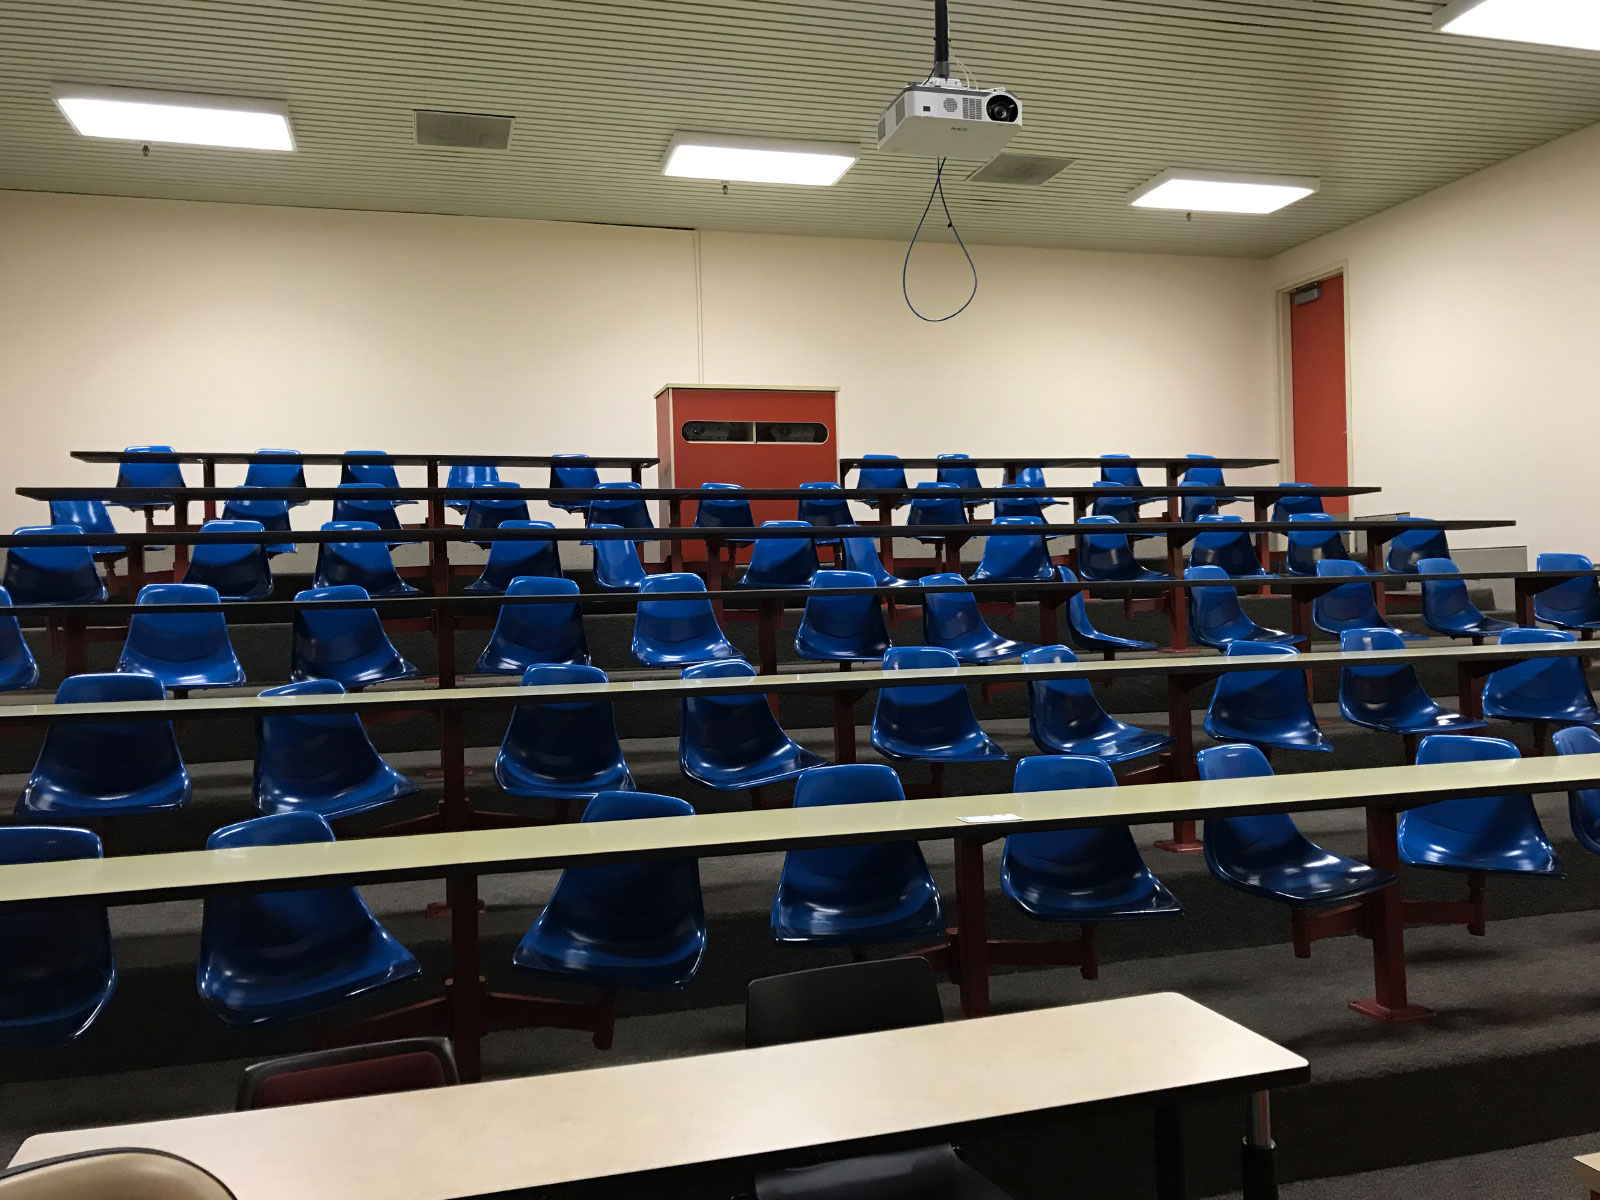 The Pauling Lecture Hall with dozens of blue, swiveling seats, located at the Oregon City campus